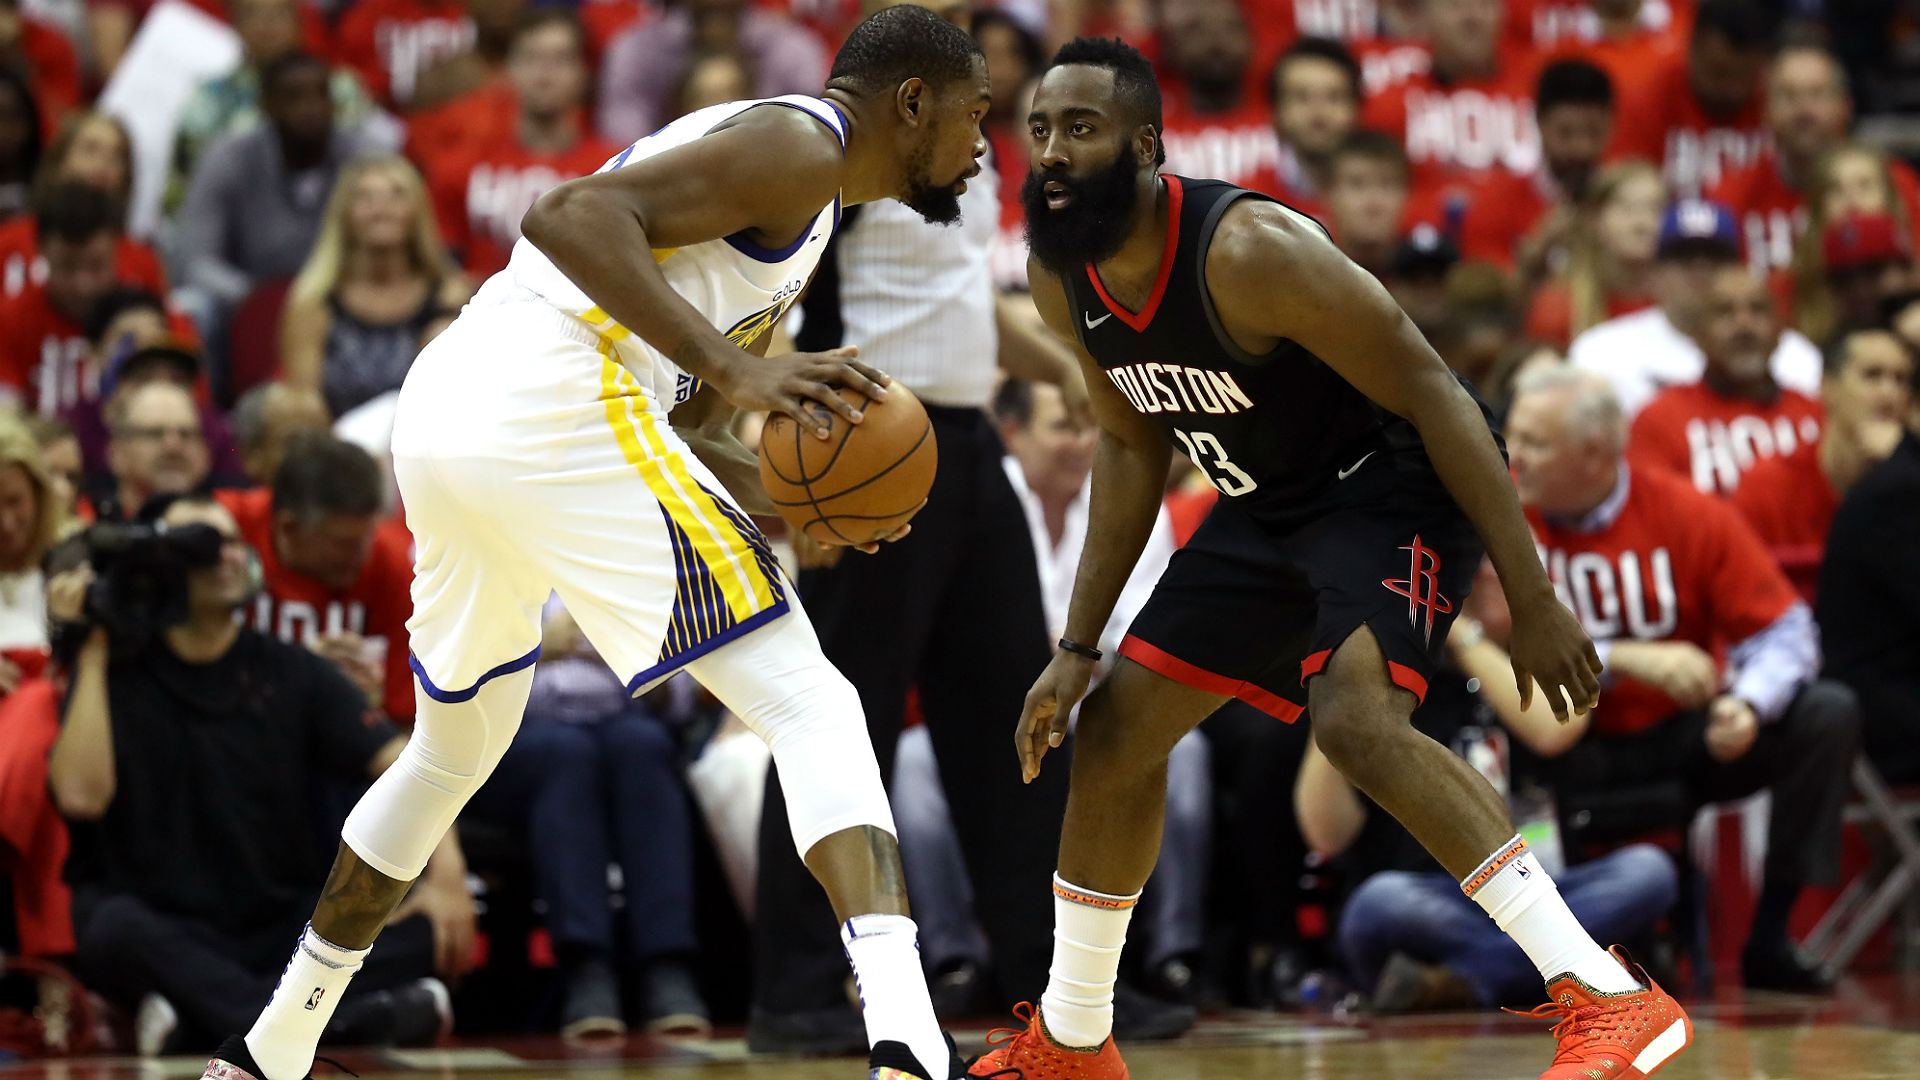 Warriors down Rockets in opening game of Western Conference finals